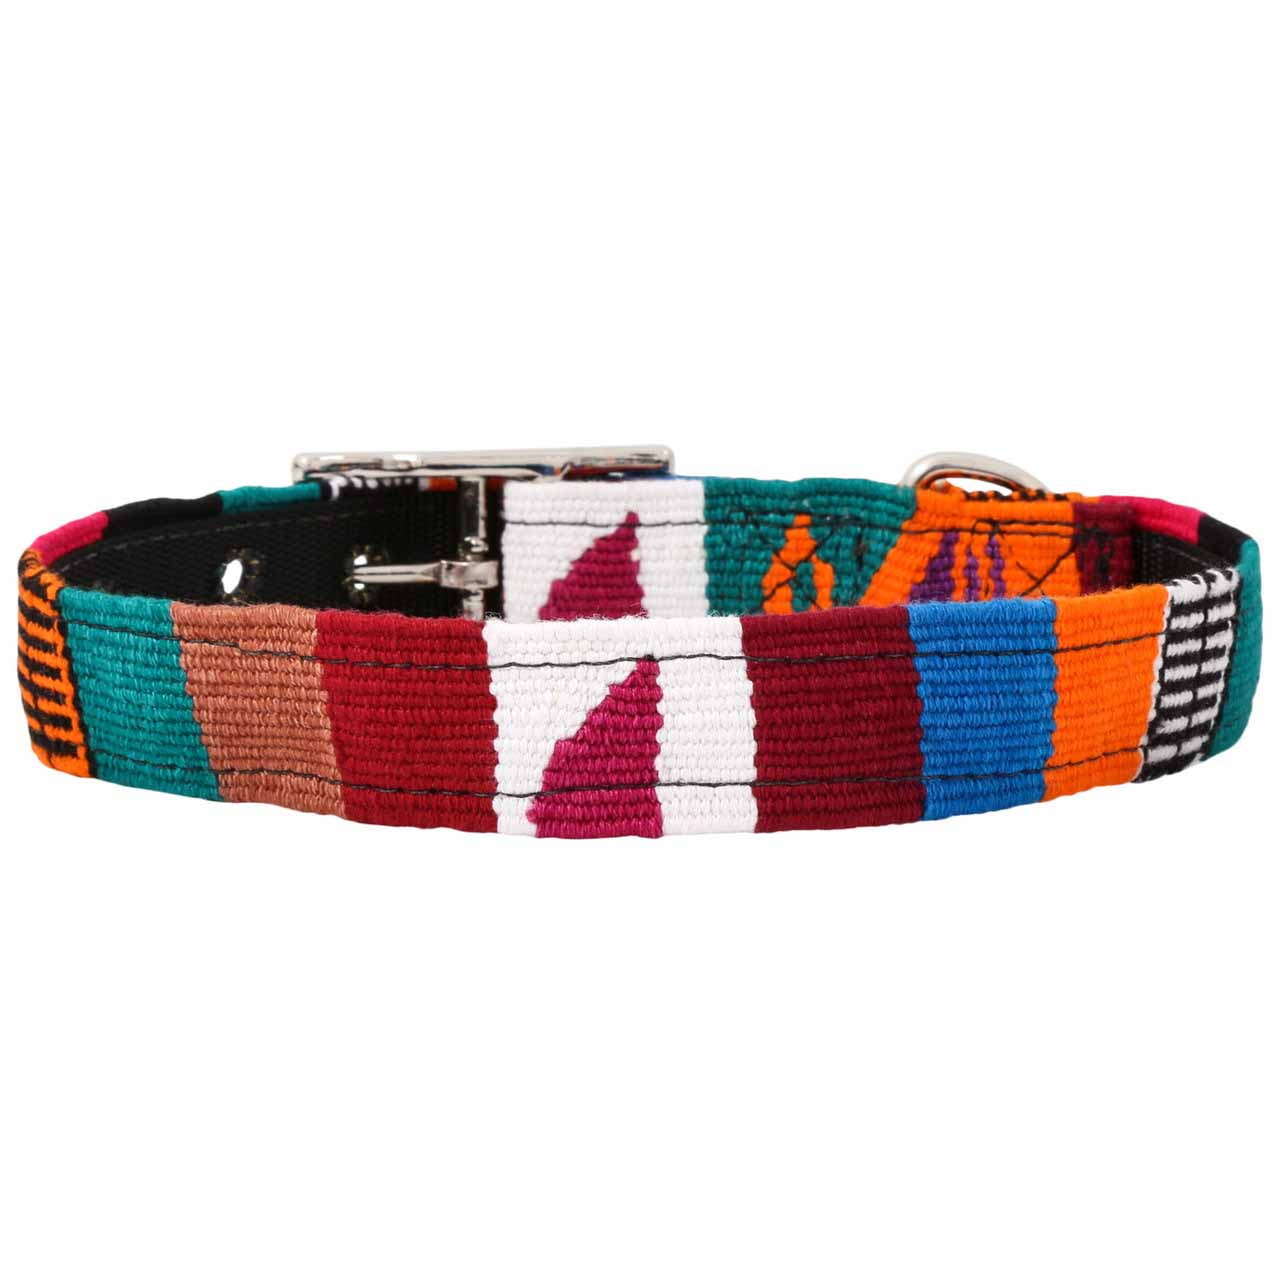 MAYA Buckle Dog Collar - Multi 1